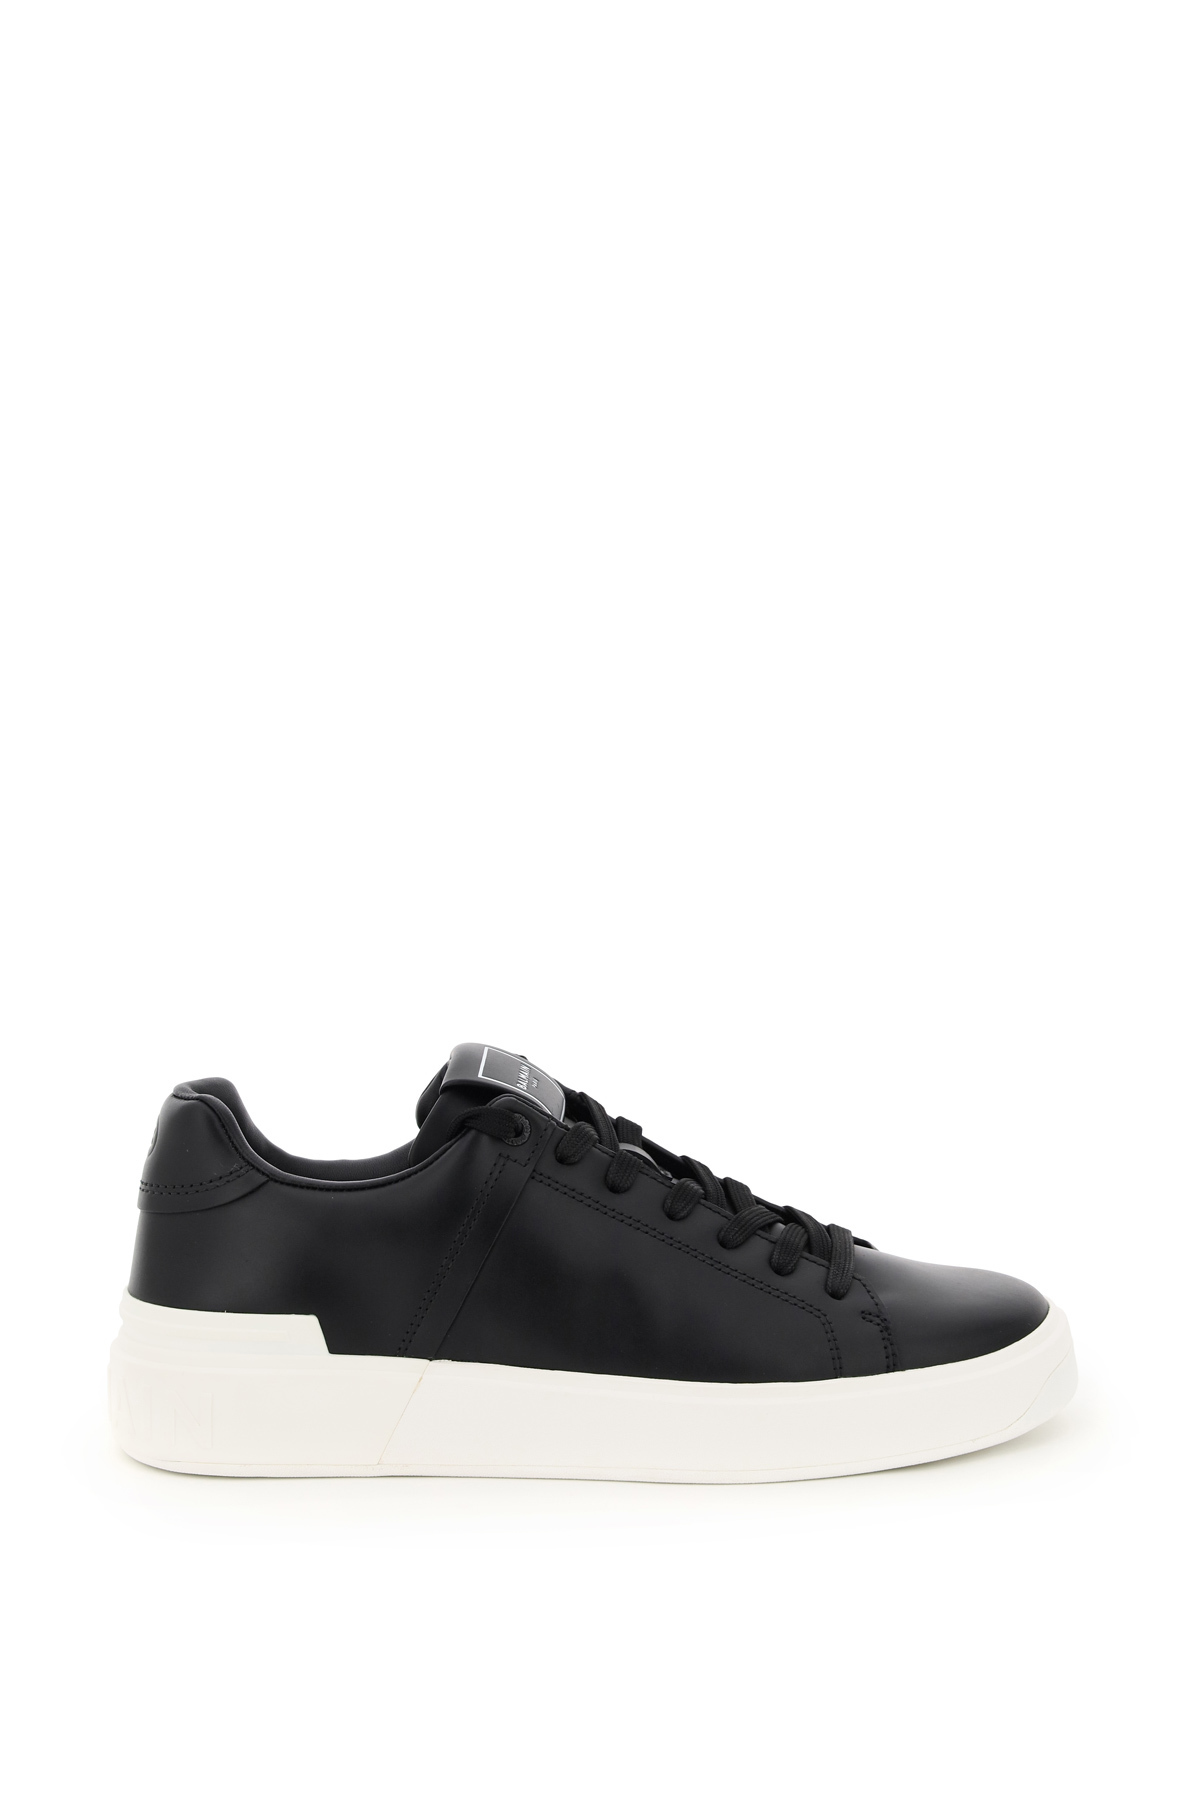 BALMAIN B COURT LEATHER SNEAKERS